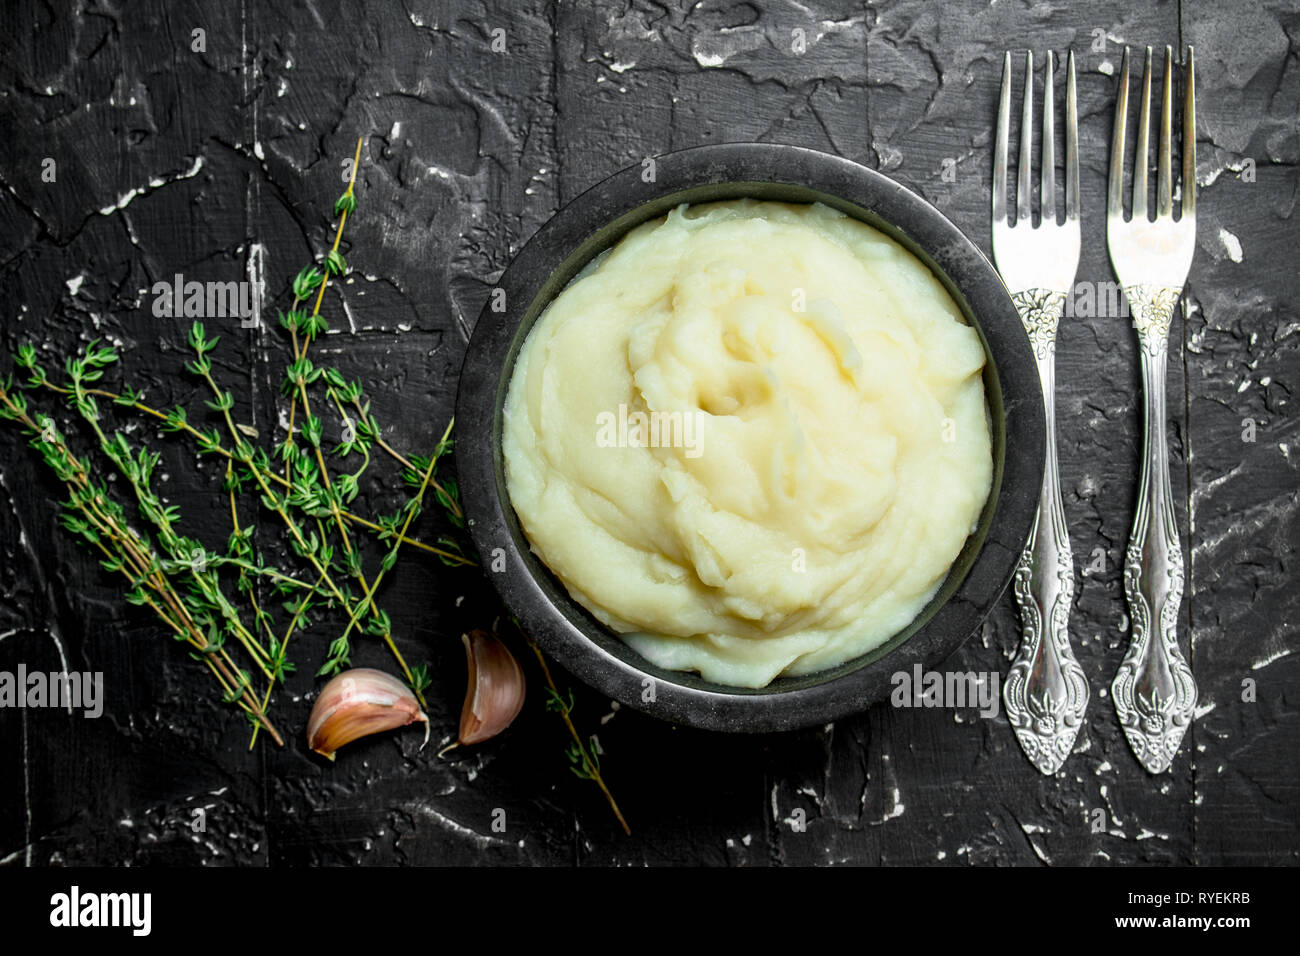 Mashed potatoes in a bowl with garlic and thyme. On black rustic background. - Stock Image